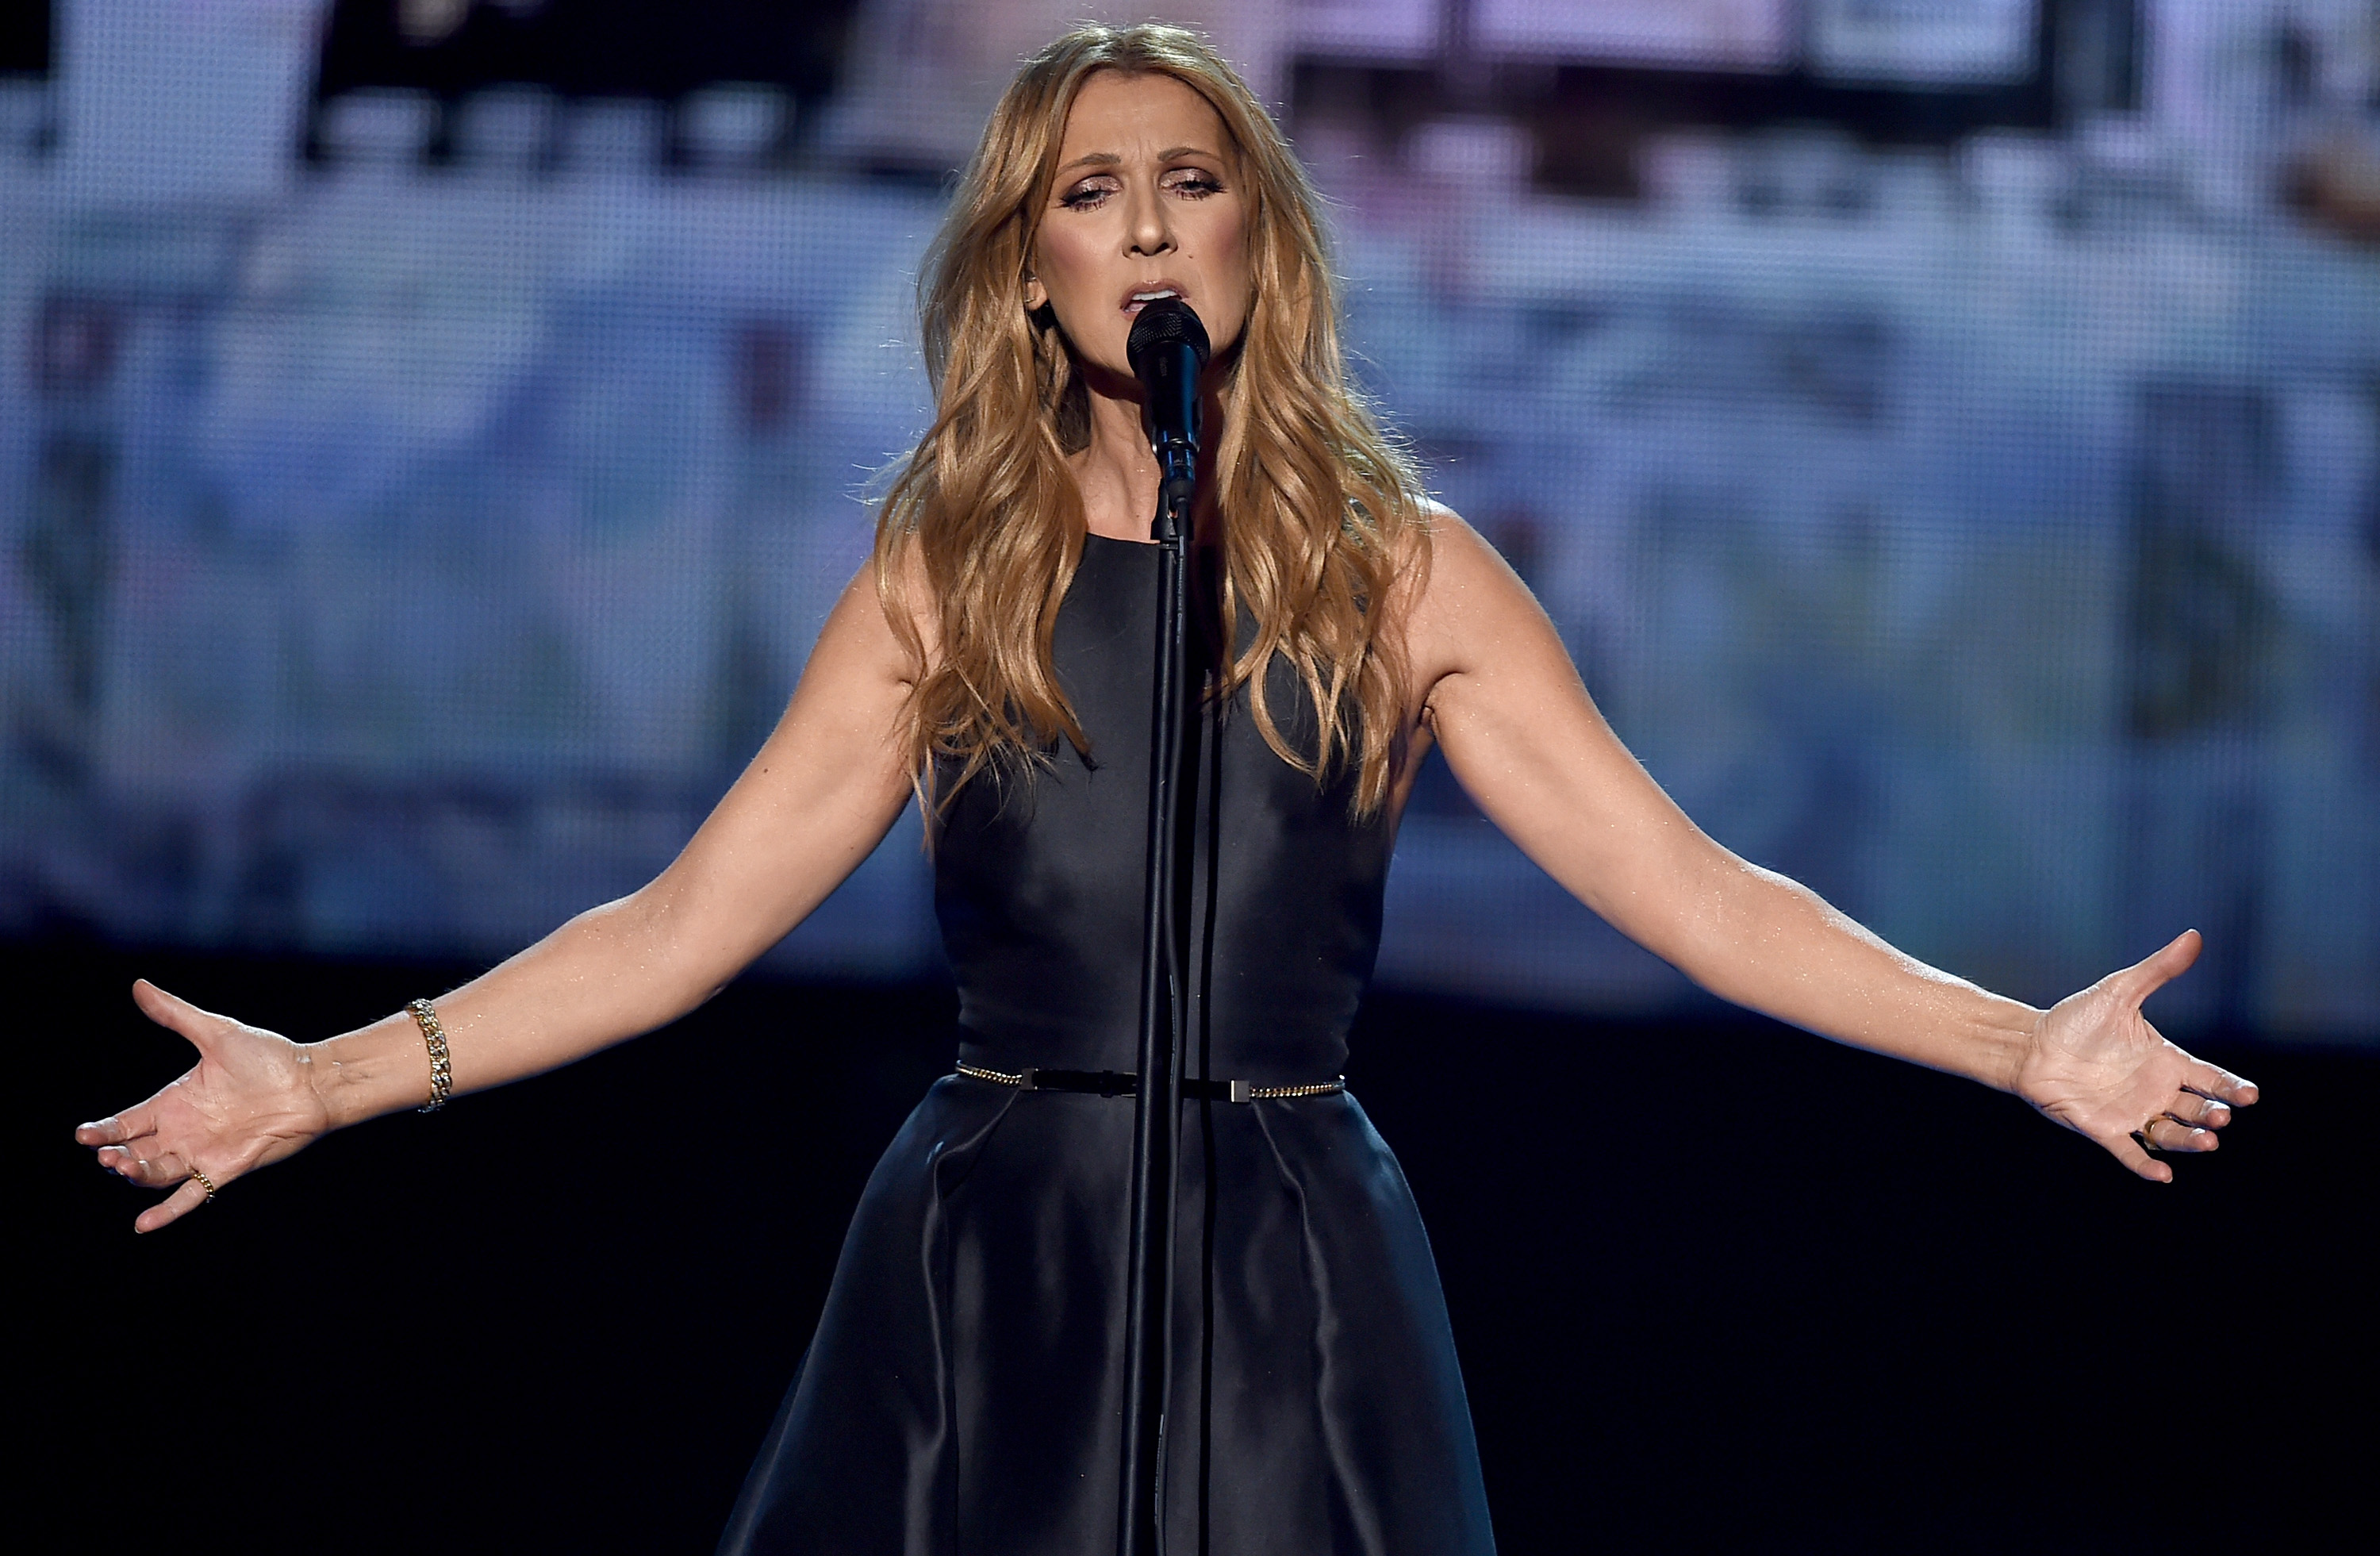 LOS ANGELES, CA - NOVEMBER 22: Singer Celine Dion performs onstage during the 2015 American Music Awards at Microsoft Theater on November 22, 2015 in Los Angeles, California.   Kevin Winter/Getty Images/AFP